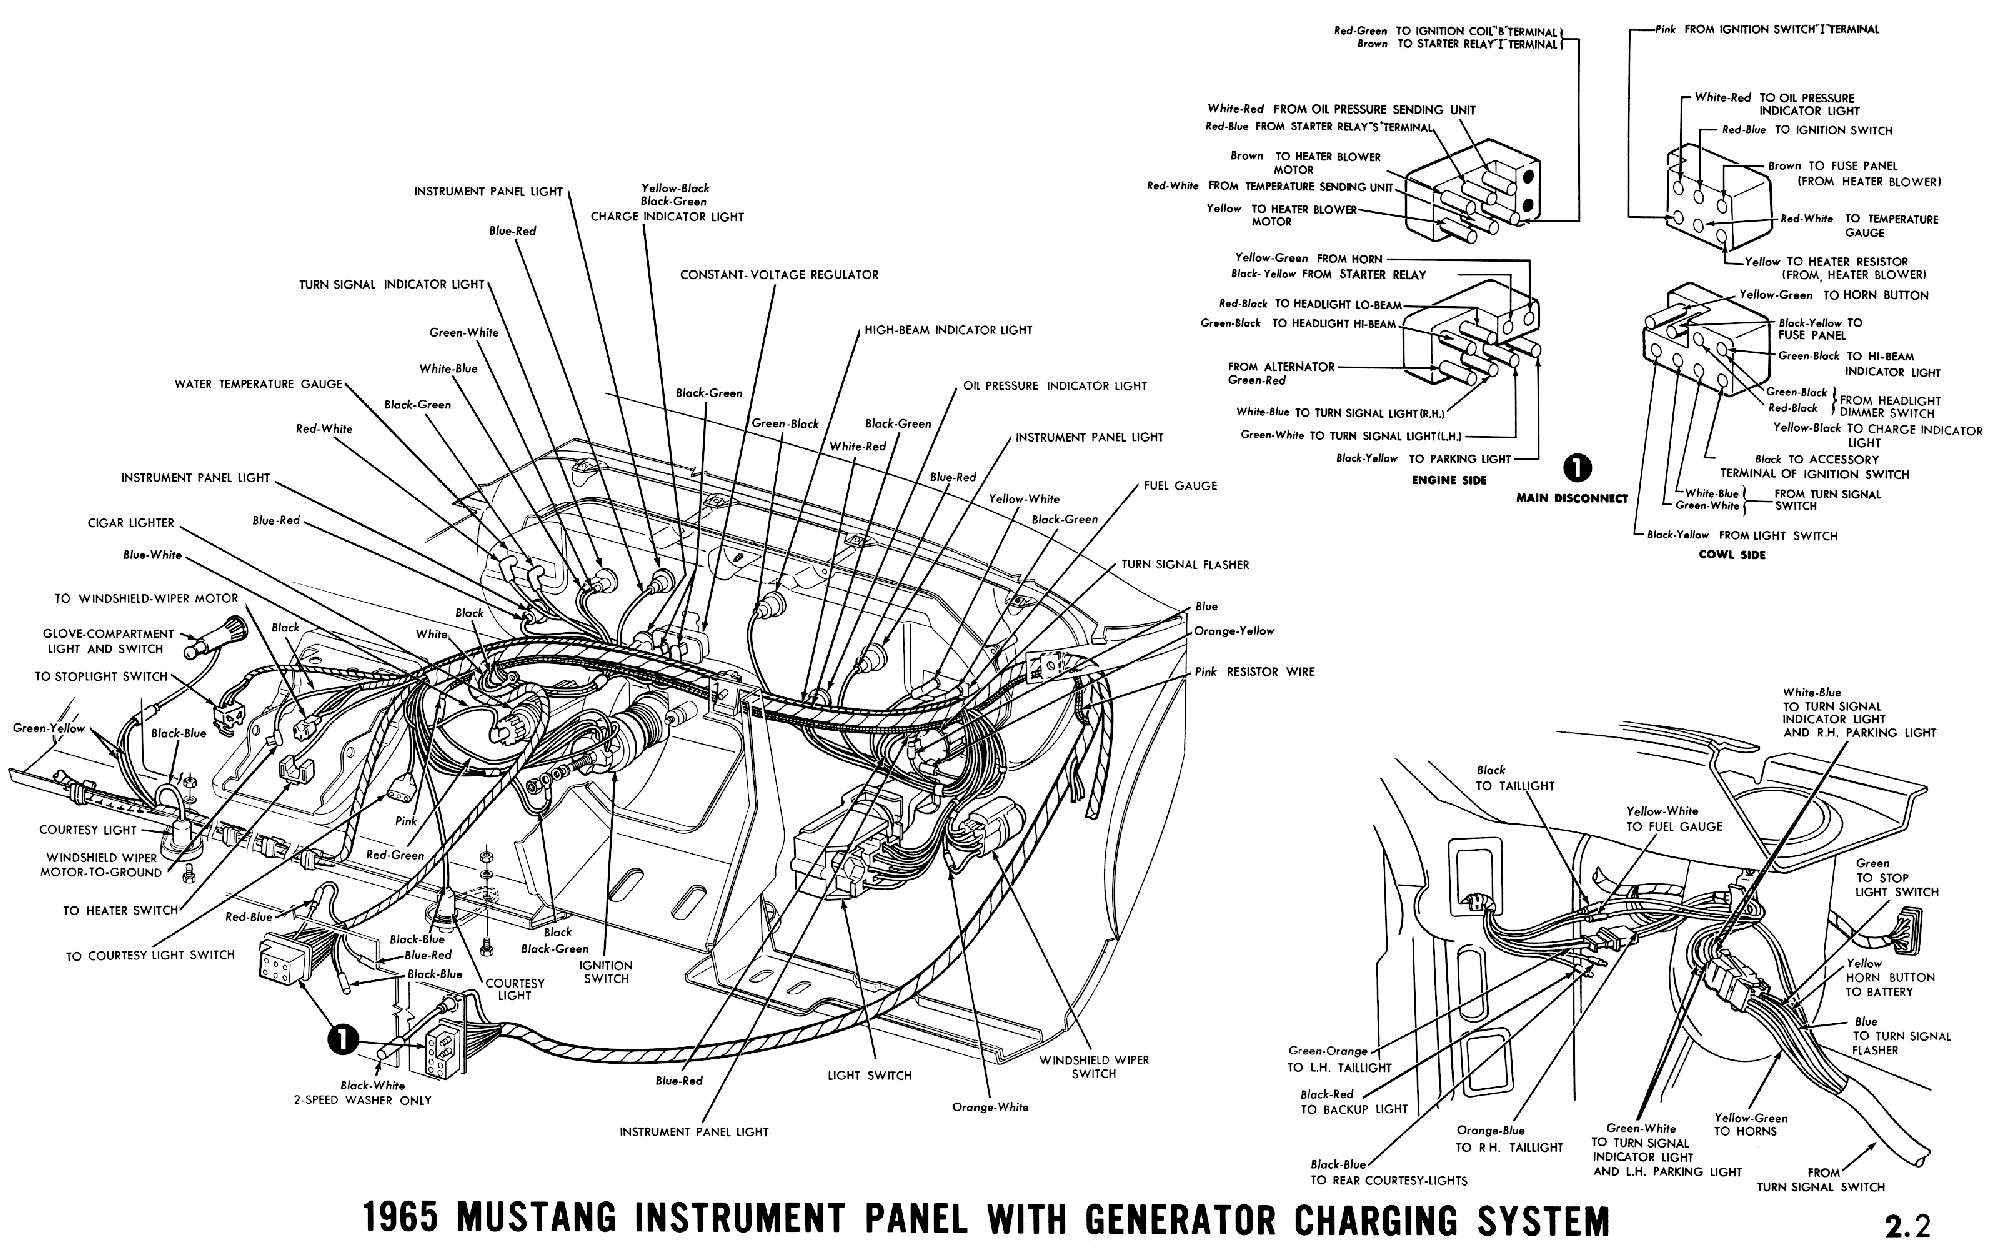 Alternator Wiring Diagram 65 Mustang Data Ford Wire 1965 Diagrams Average Joe Restoration 1983